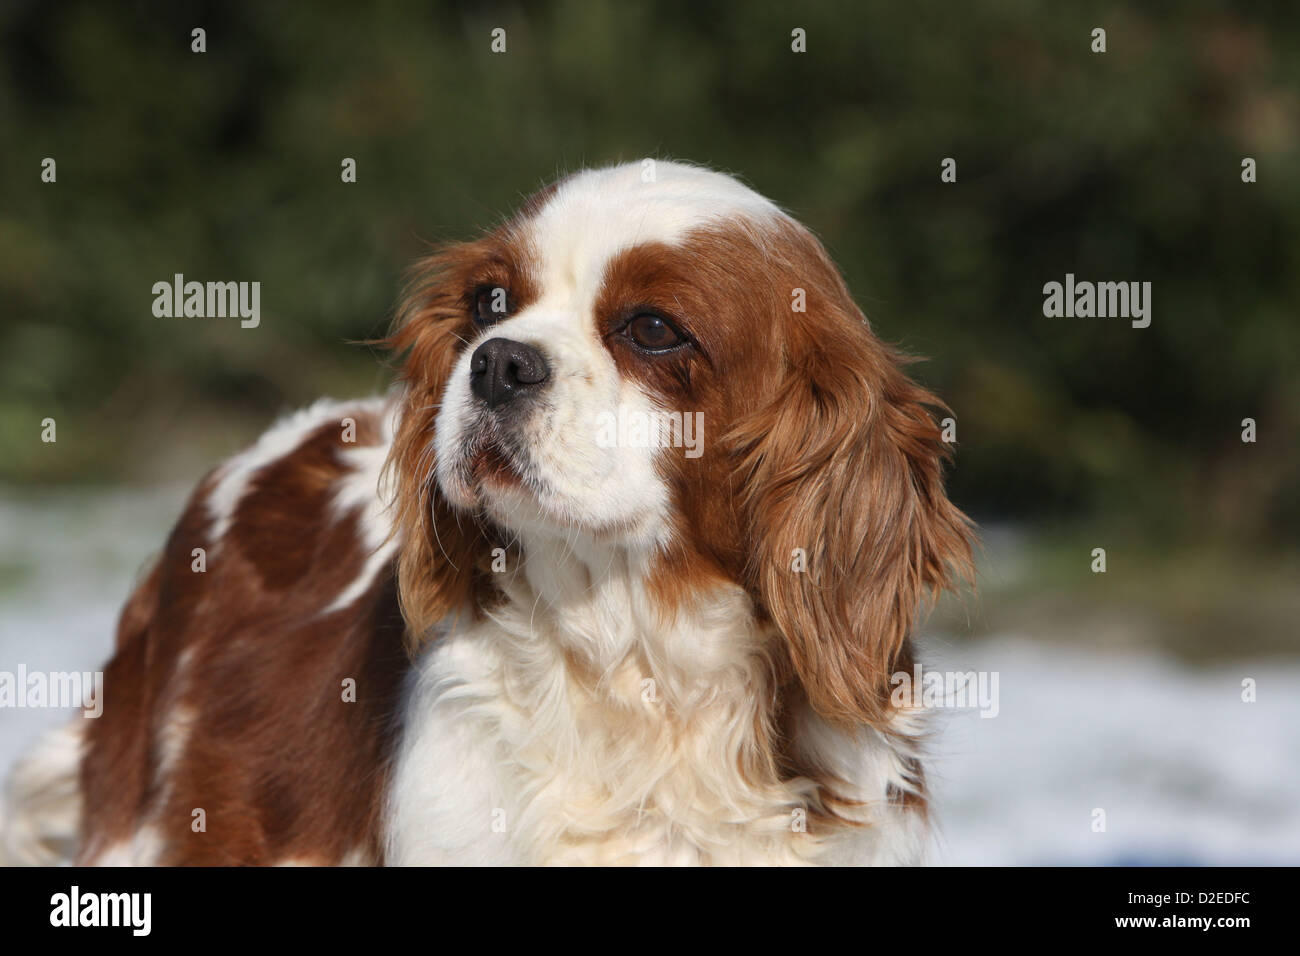 Same, Adult cavalier king charles spaniels for sale pity